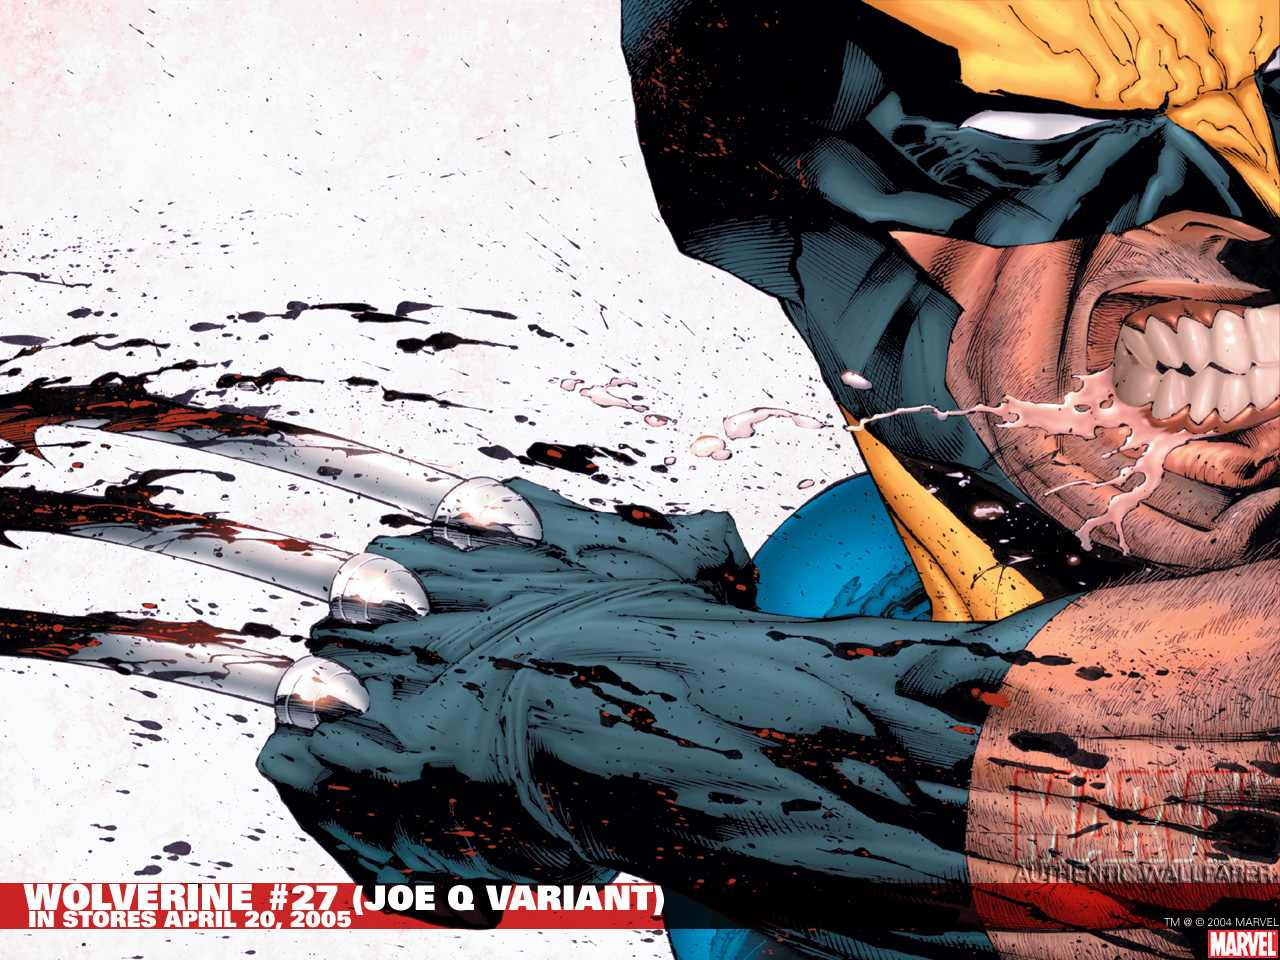 Wolverine HD wallpaper | Wolverine wallpapers